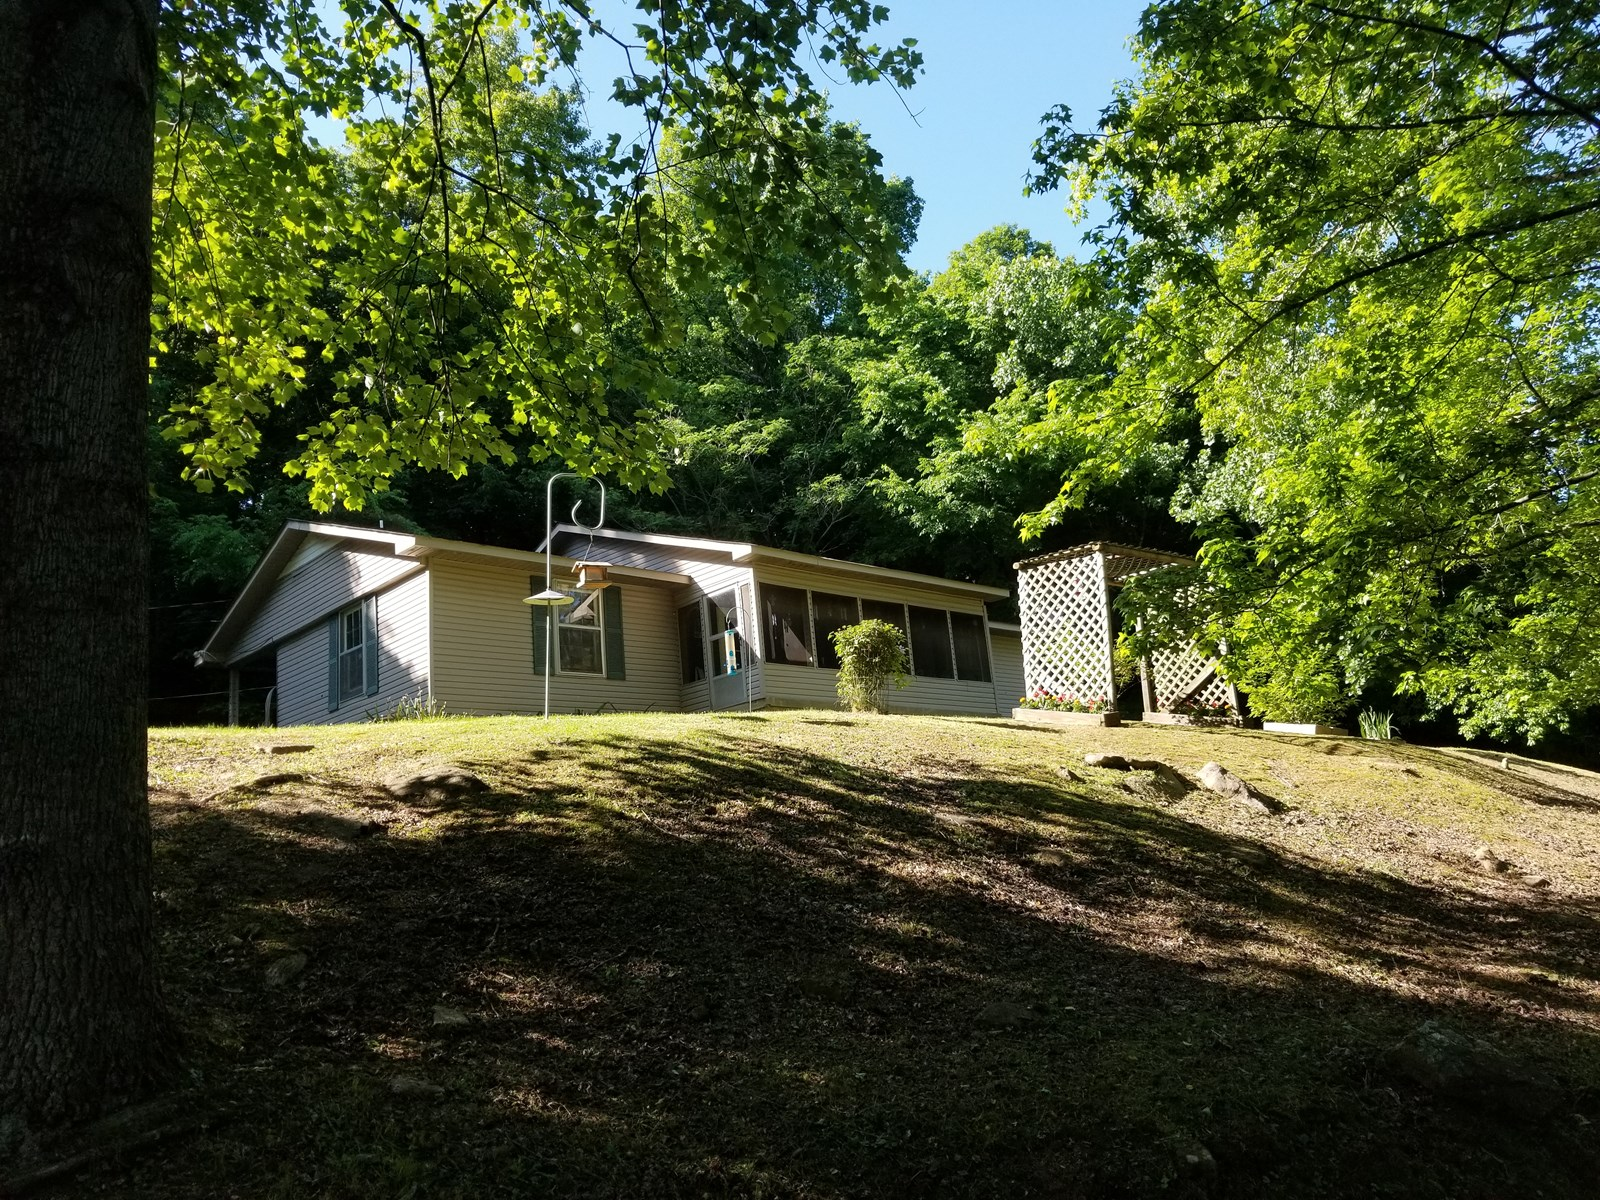 3 TENNESSEE COUNTRY HOMES FOR SALE 23.3 ACRES CREEK TIMBER